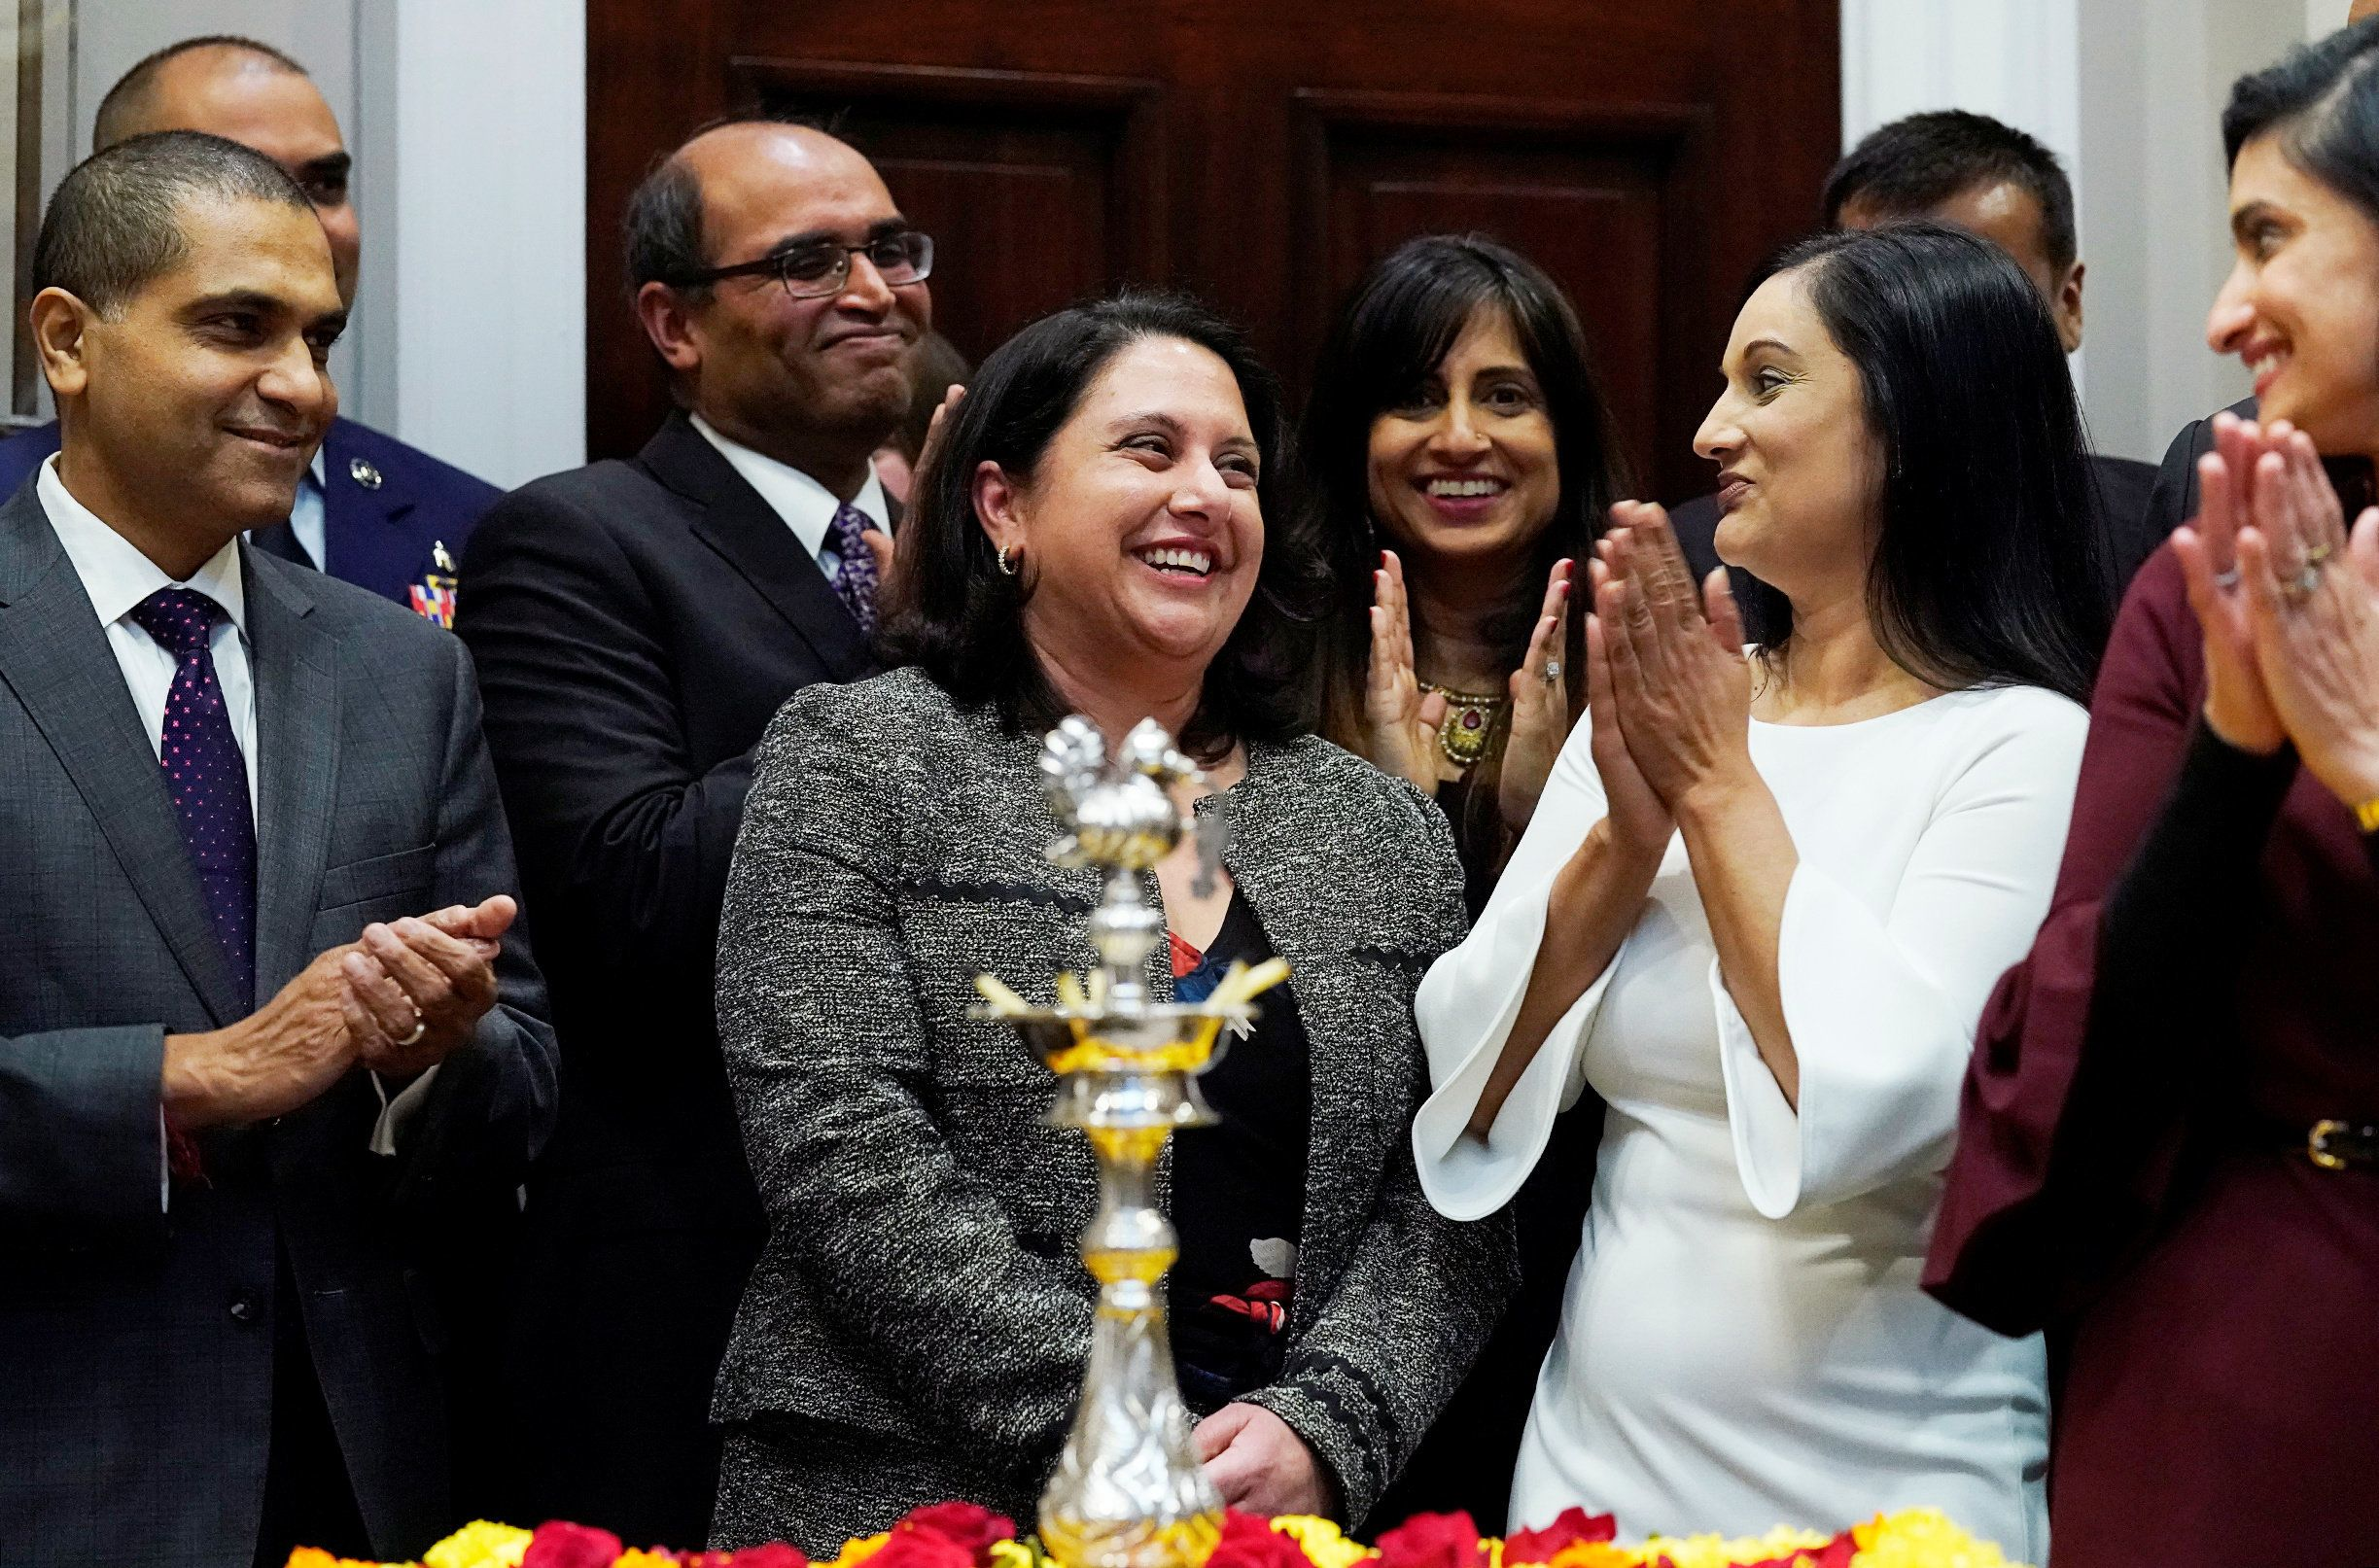 Neomi Rao (C), the administrator of the White House Office of Information and Regulatory Affairs, responds to applause from attendees as U.S. President Donald Trump announces that he is appointing her to replace Supreme Court Justice Brett Kavanaugh on the U.S. D.C. Circuit Court of Appeals during a Diwali ceremonial lighting of the Diya at the White House in Washington, U.S. November 13, 2018. REUTERS/Jonathan Ernst